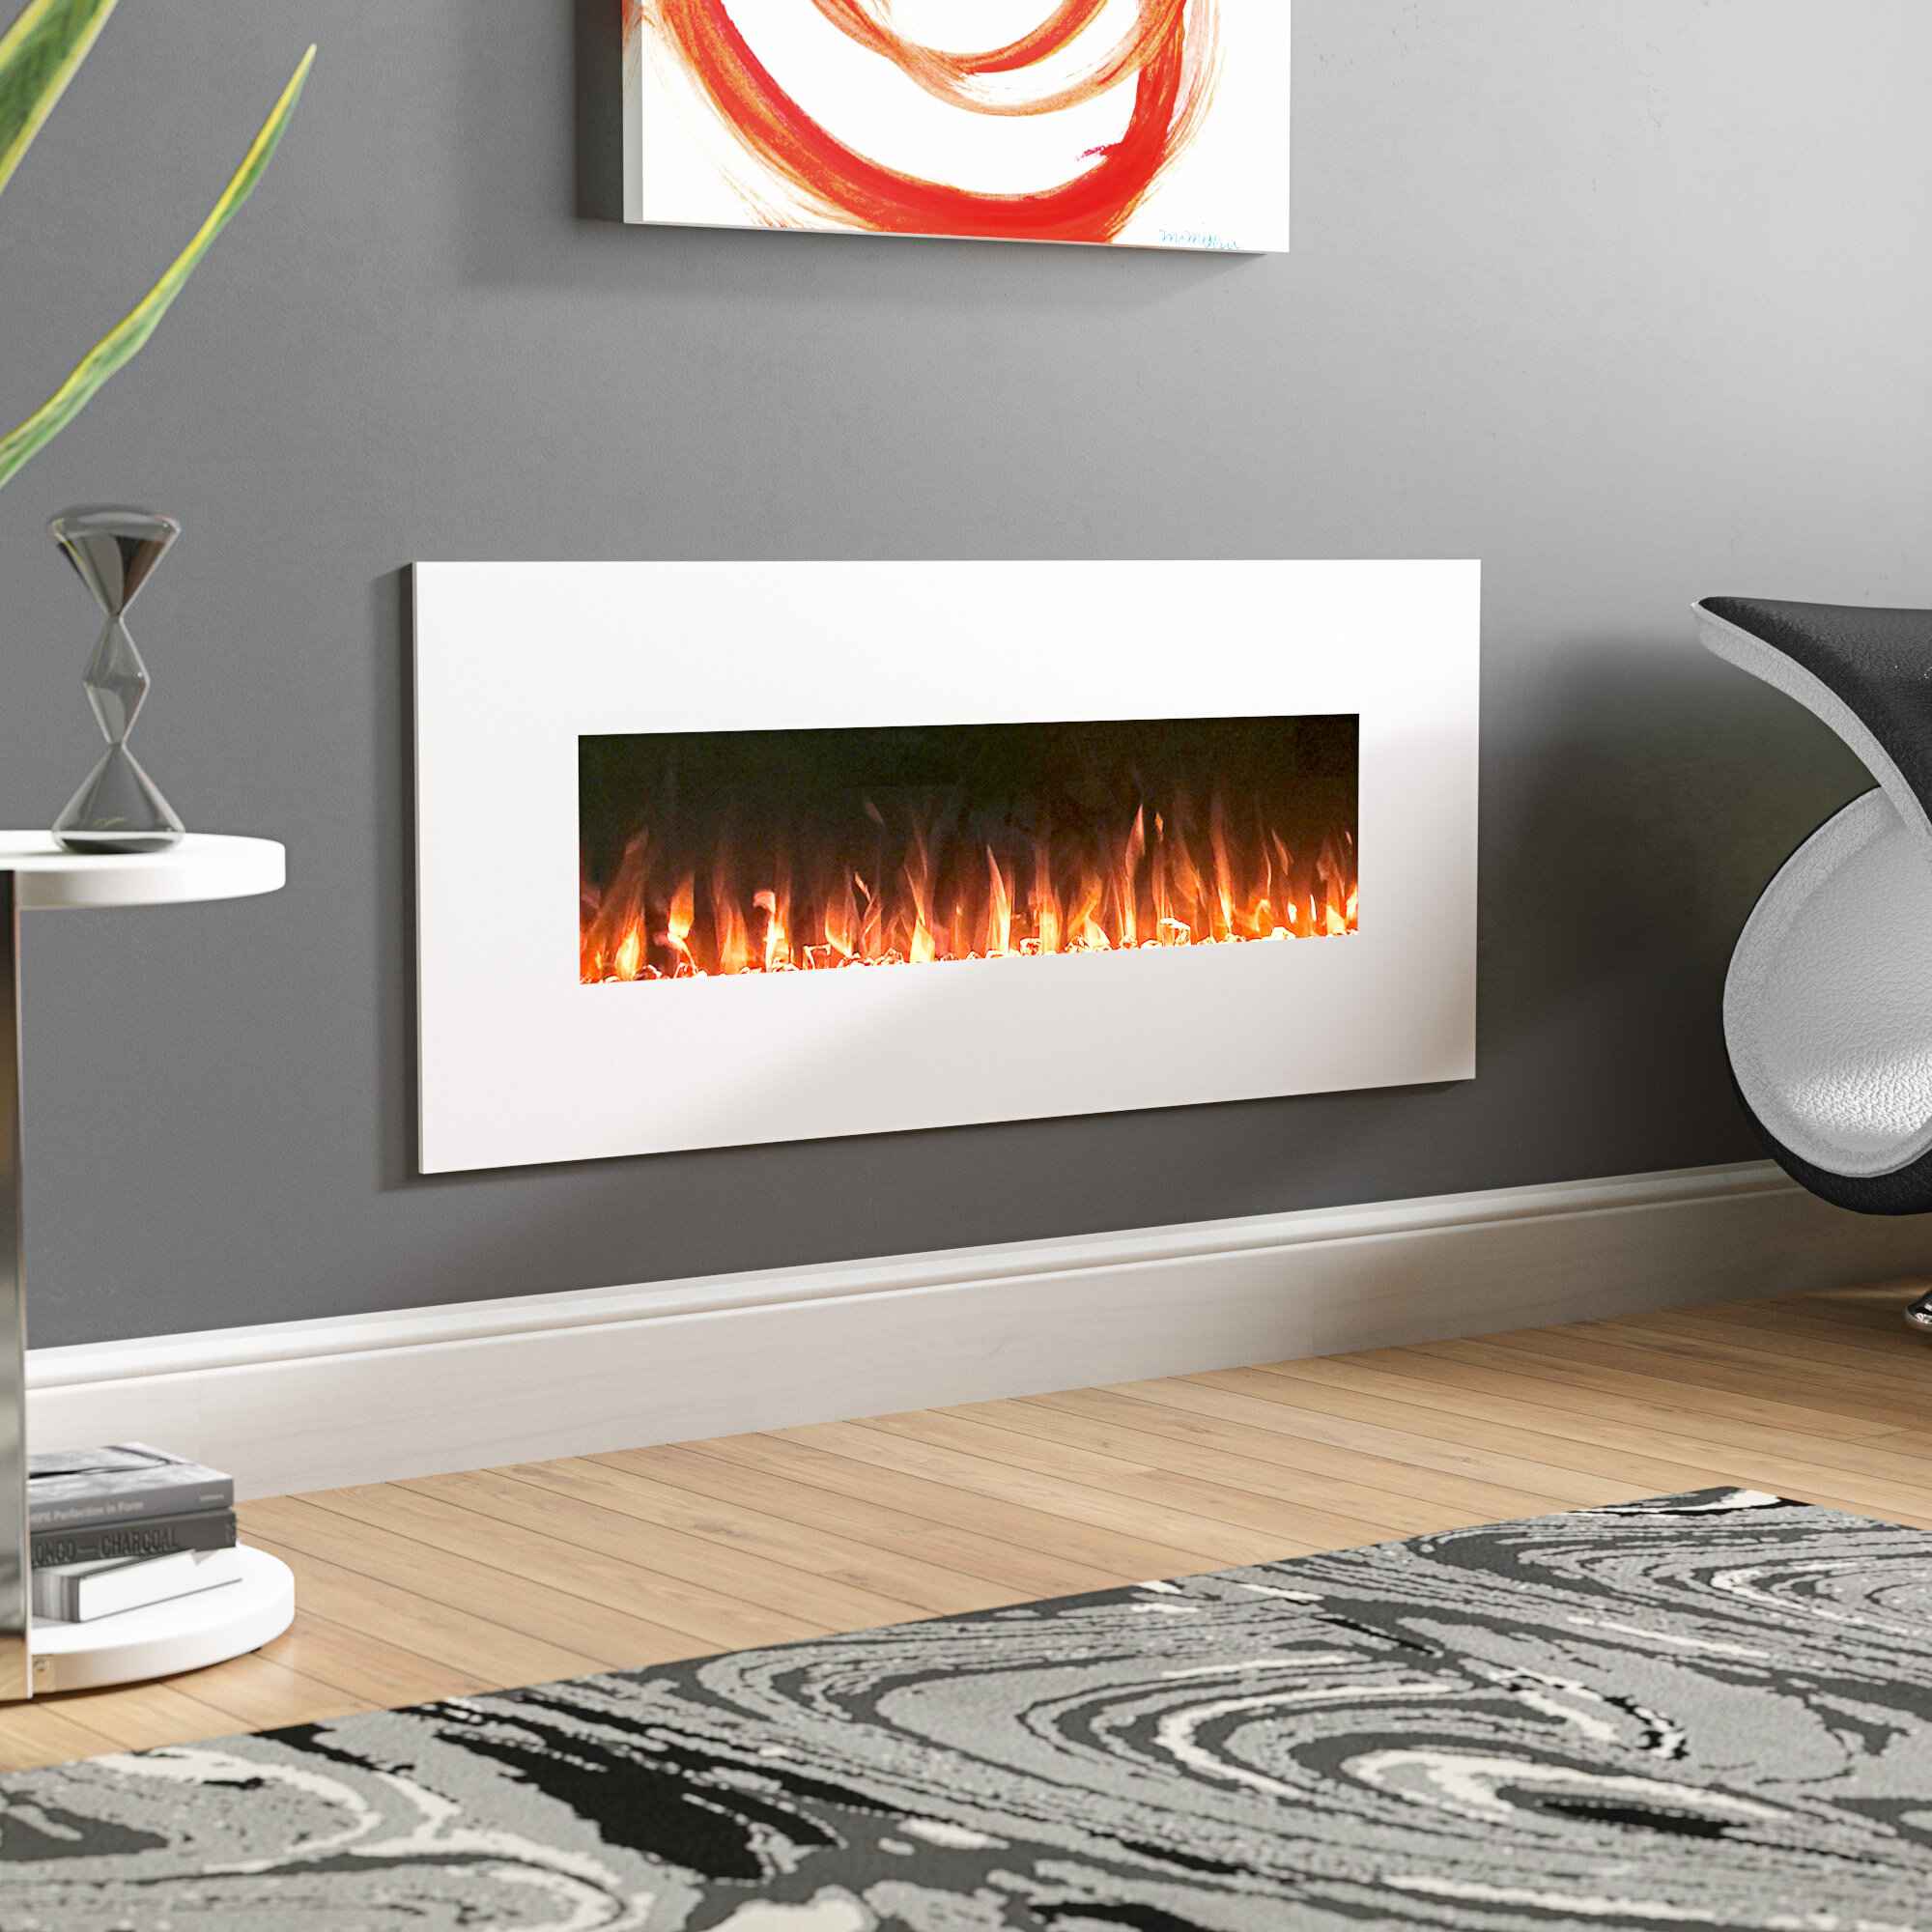 home fireplace heat fan page kit inc of raindrops n your glo for creative